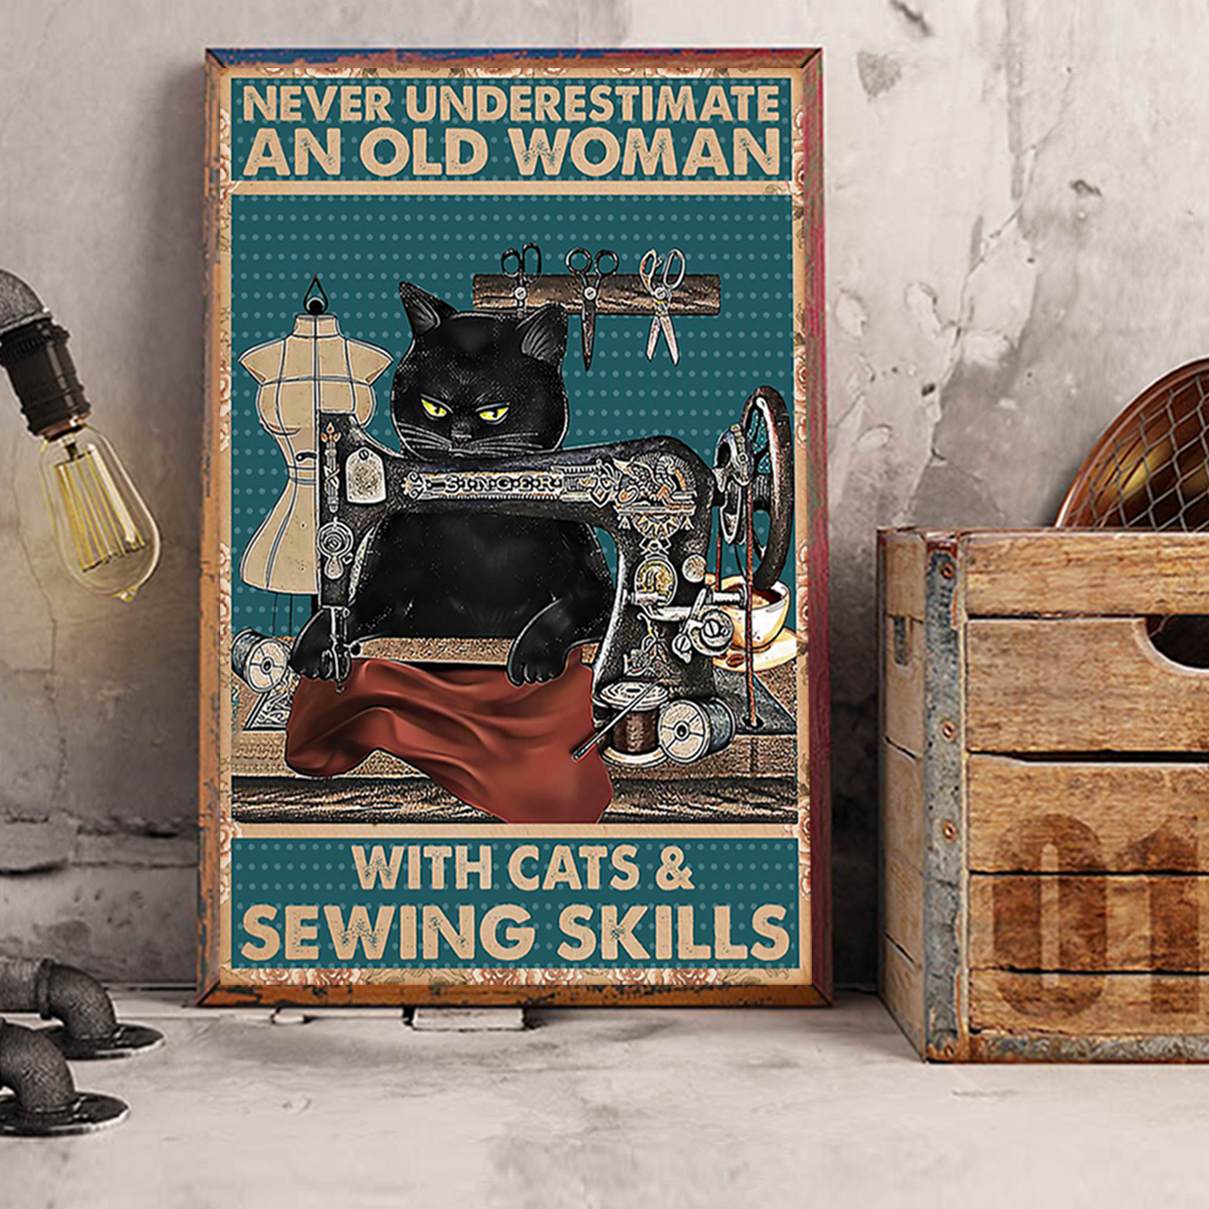 Never underestimate an old woman with cats and sewing skills poster A1